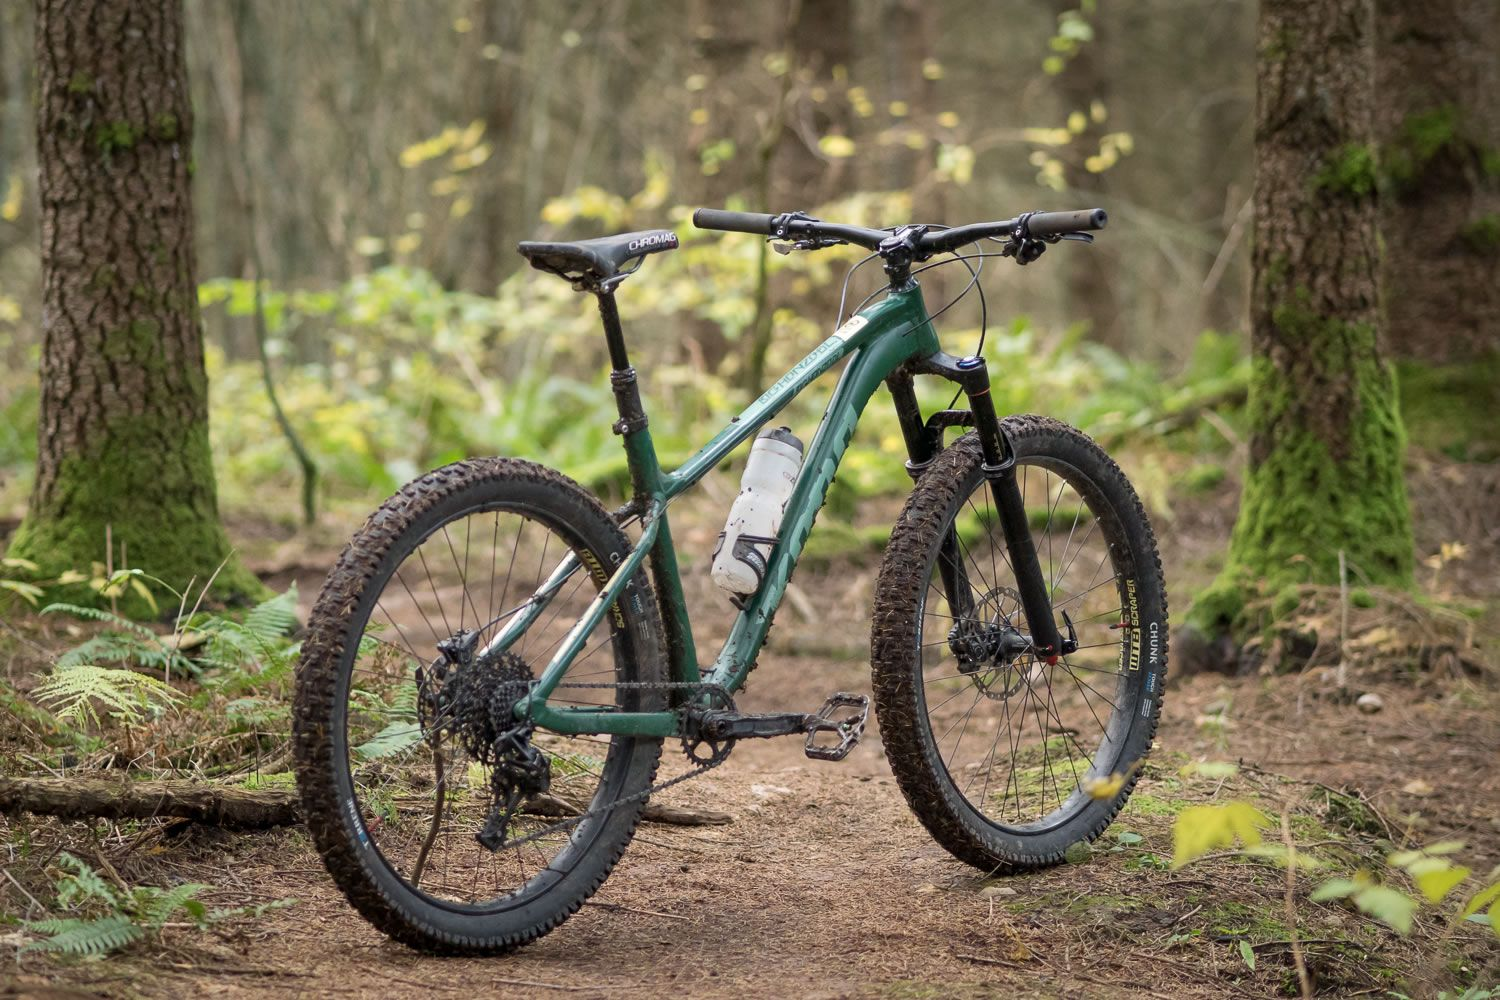 128cf8ec097 Kona Big Honzo DL, Long-term Review | Adventure Bikes | Kona bikes ...